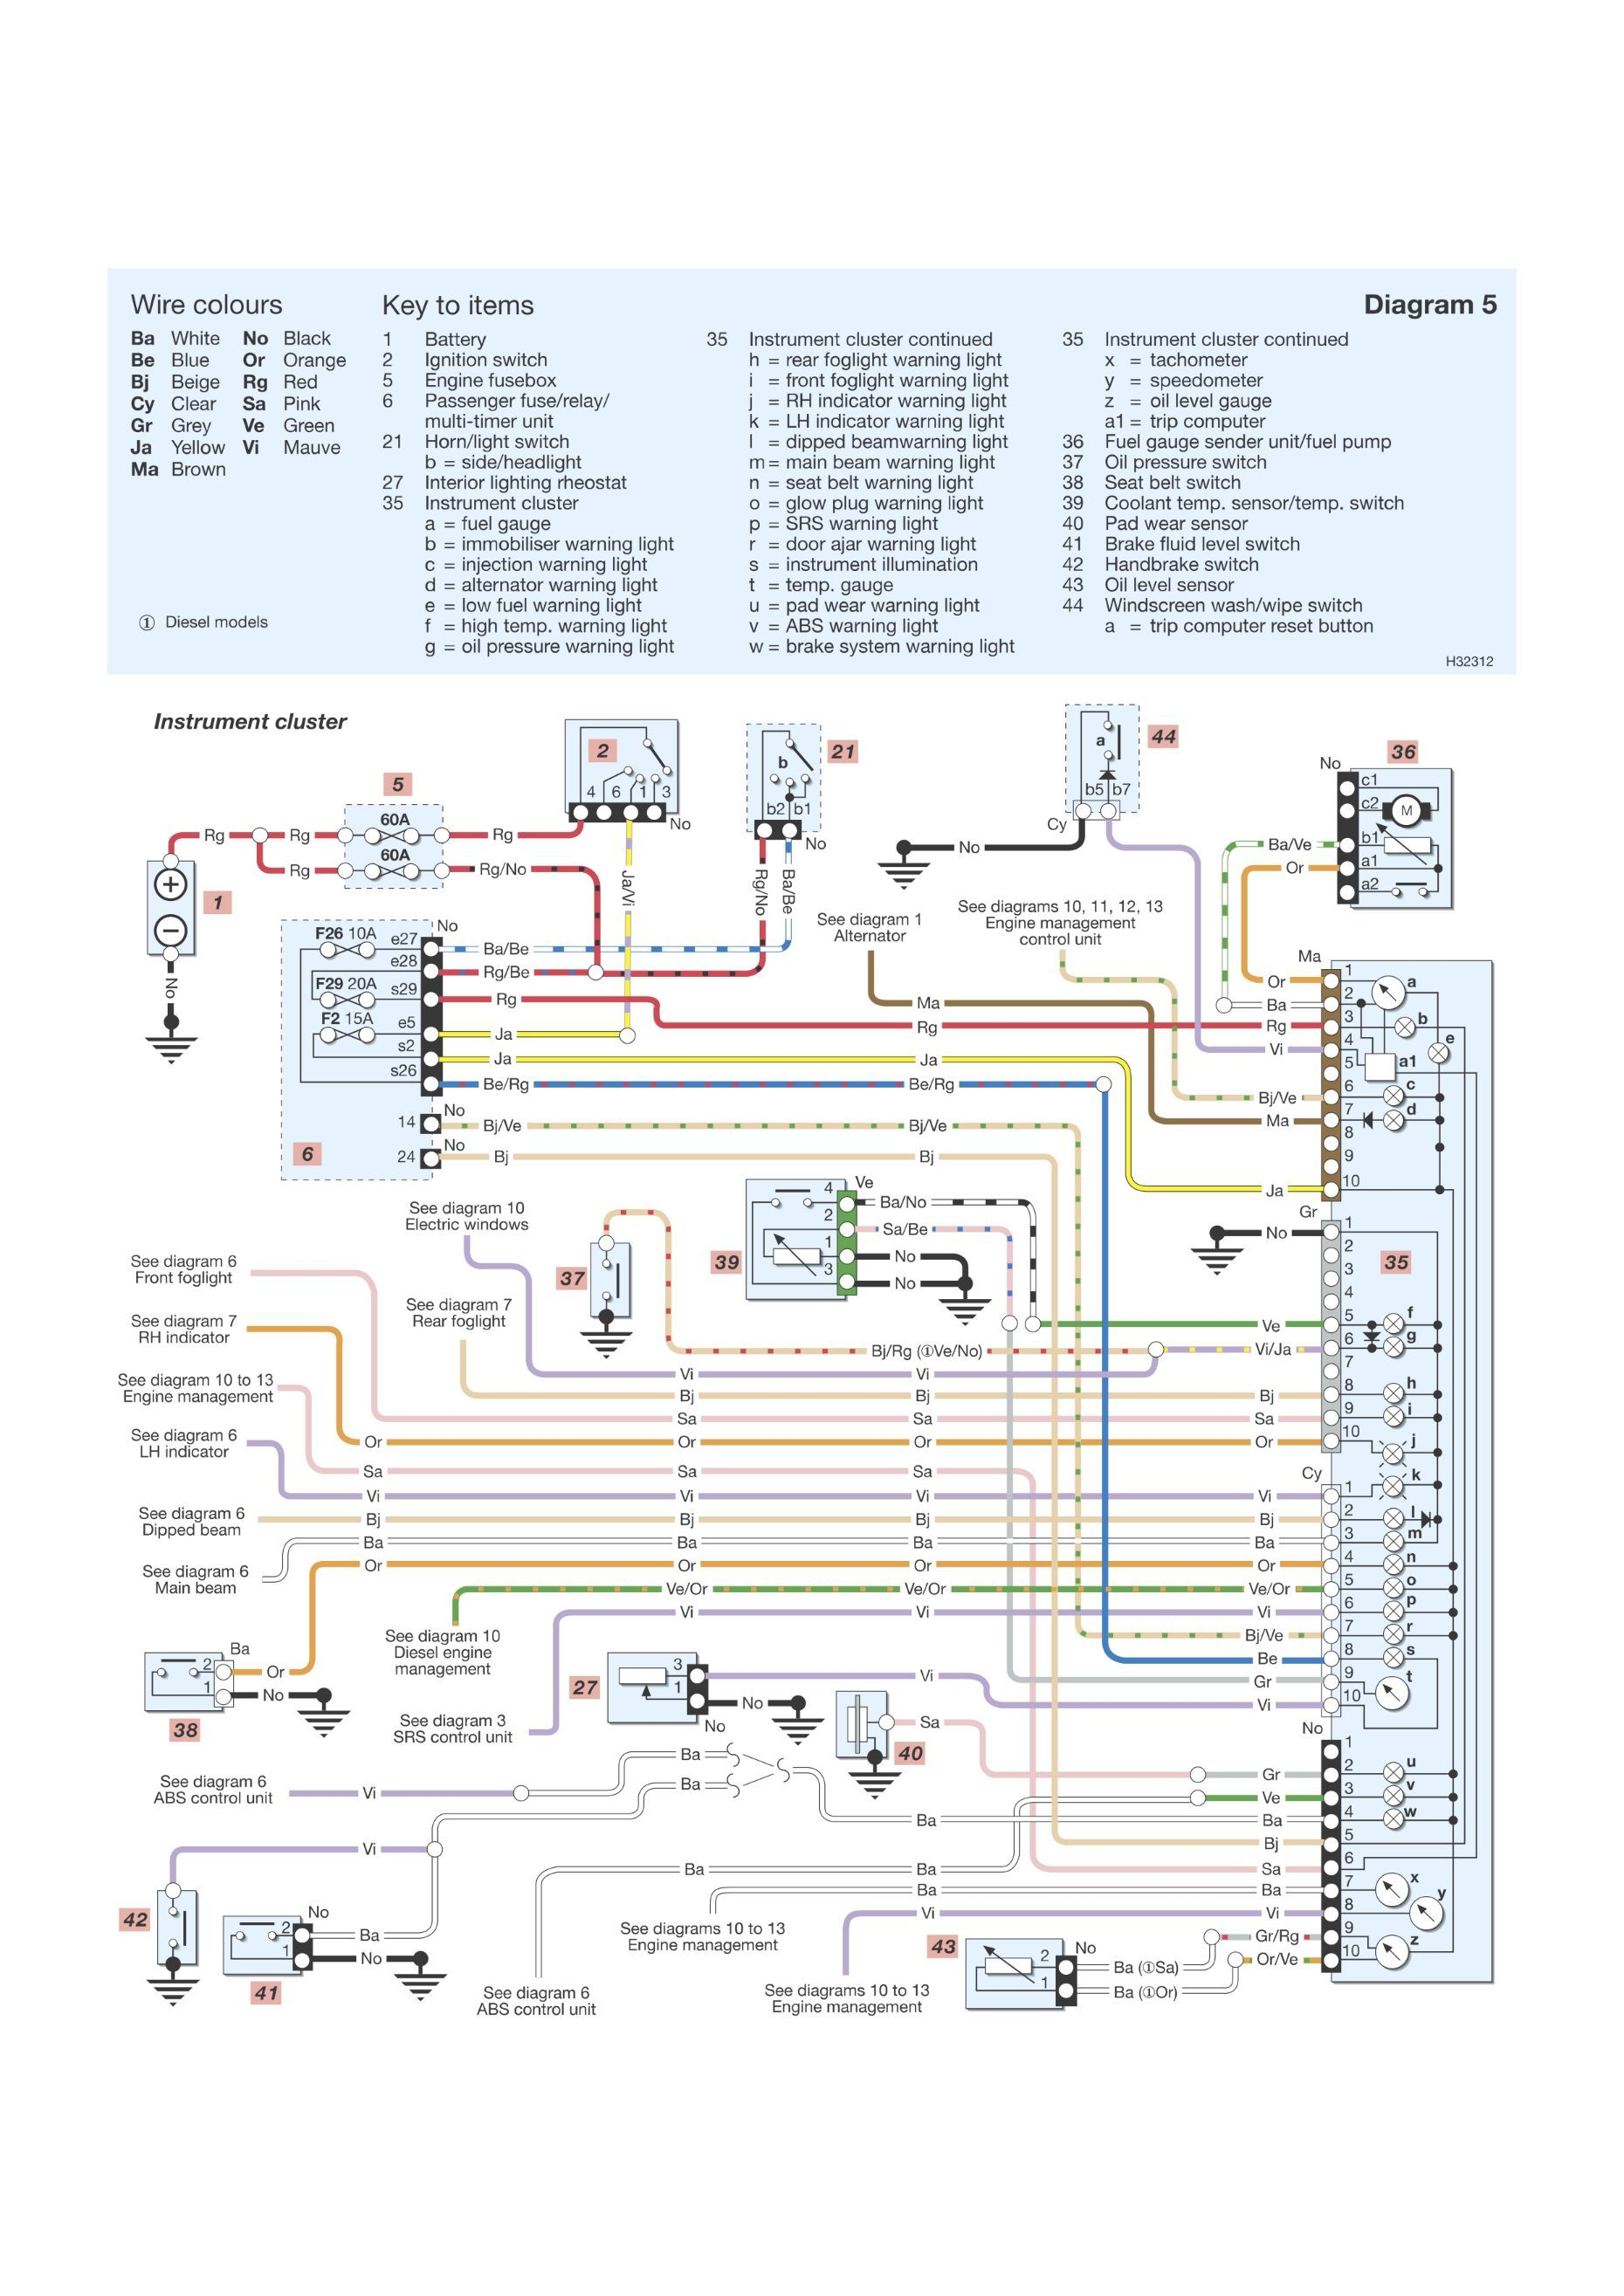 small resolution of renault trafic wiring diagram download car stuff diagram cars wiring diagrams peugeot as well toyota land cruiser 1973 fj40 wiring